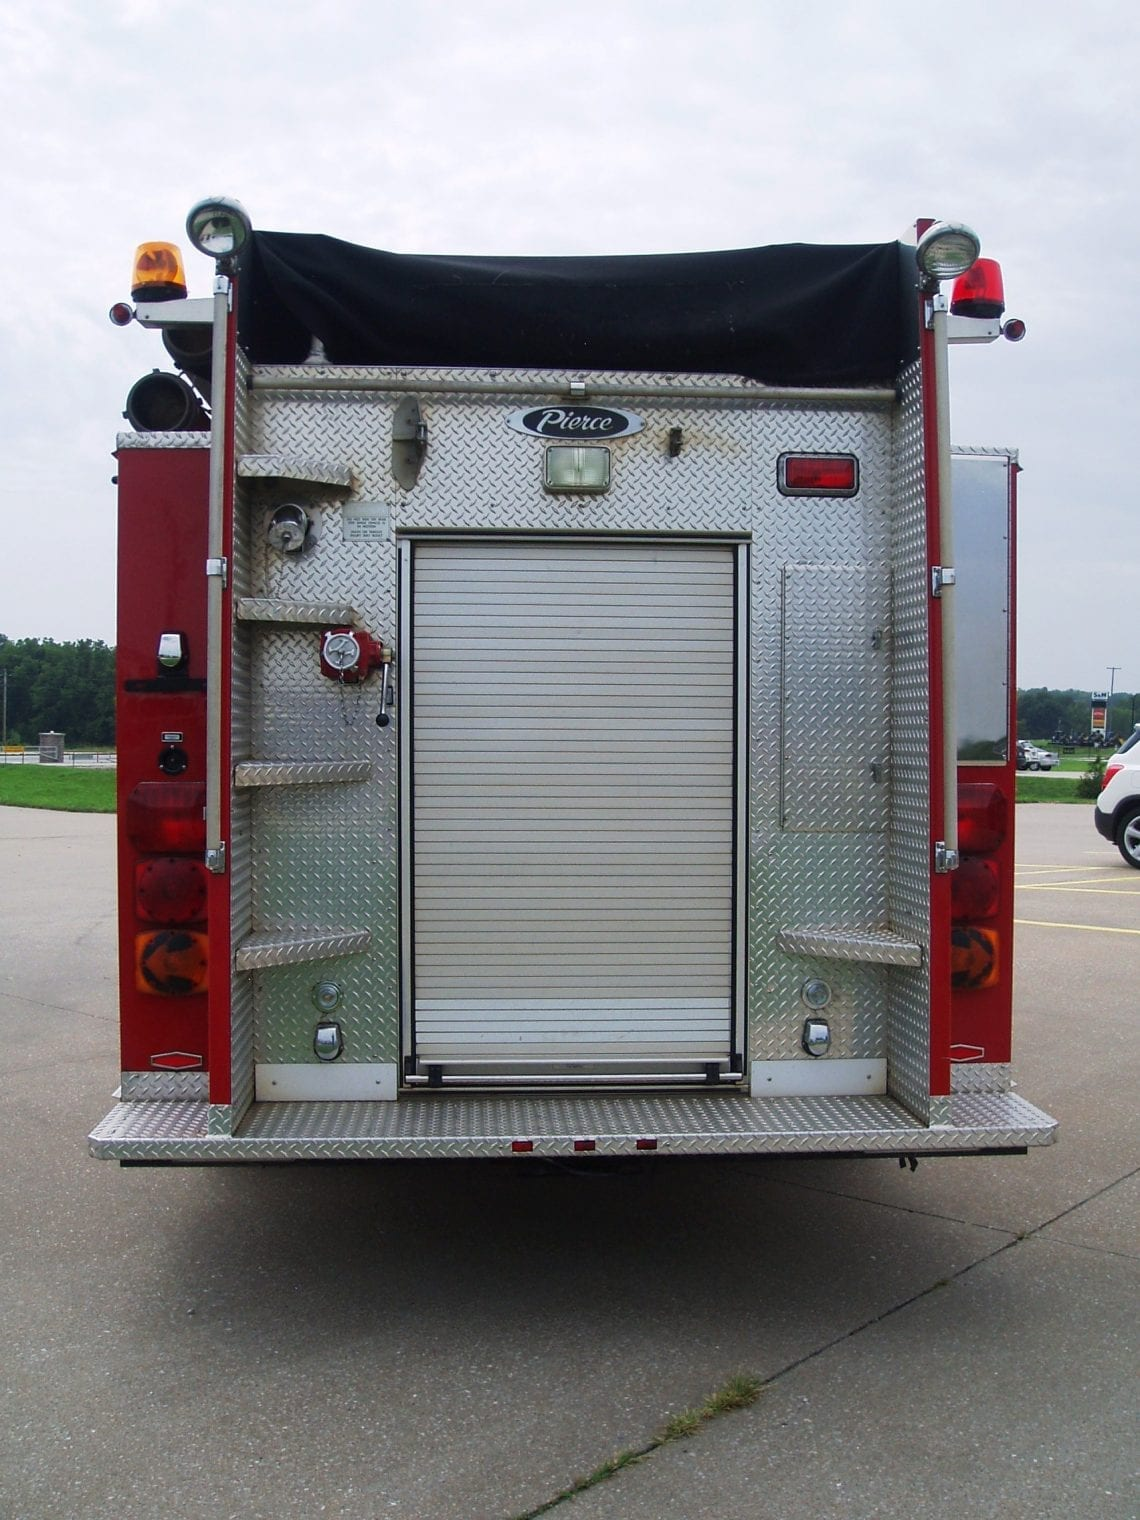 Pierce pumper with back door closed